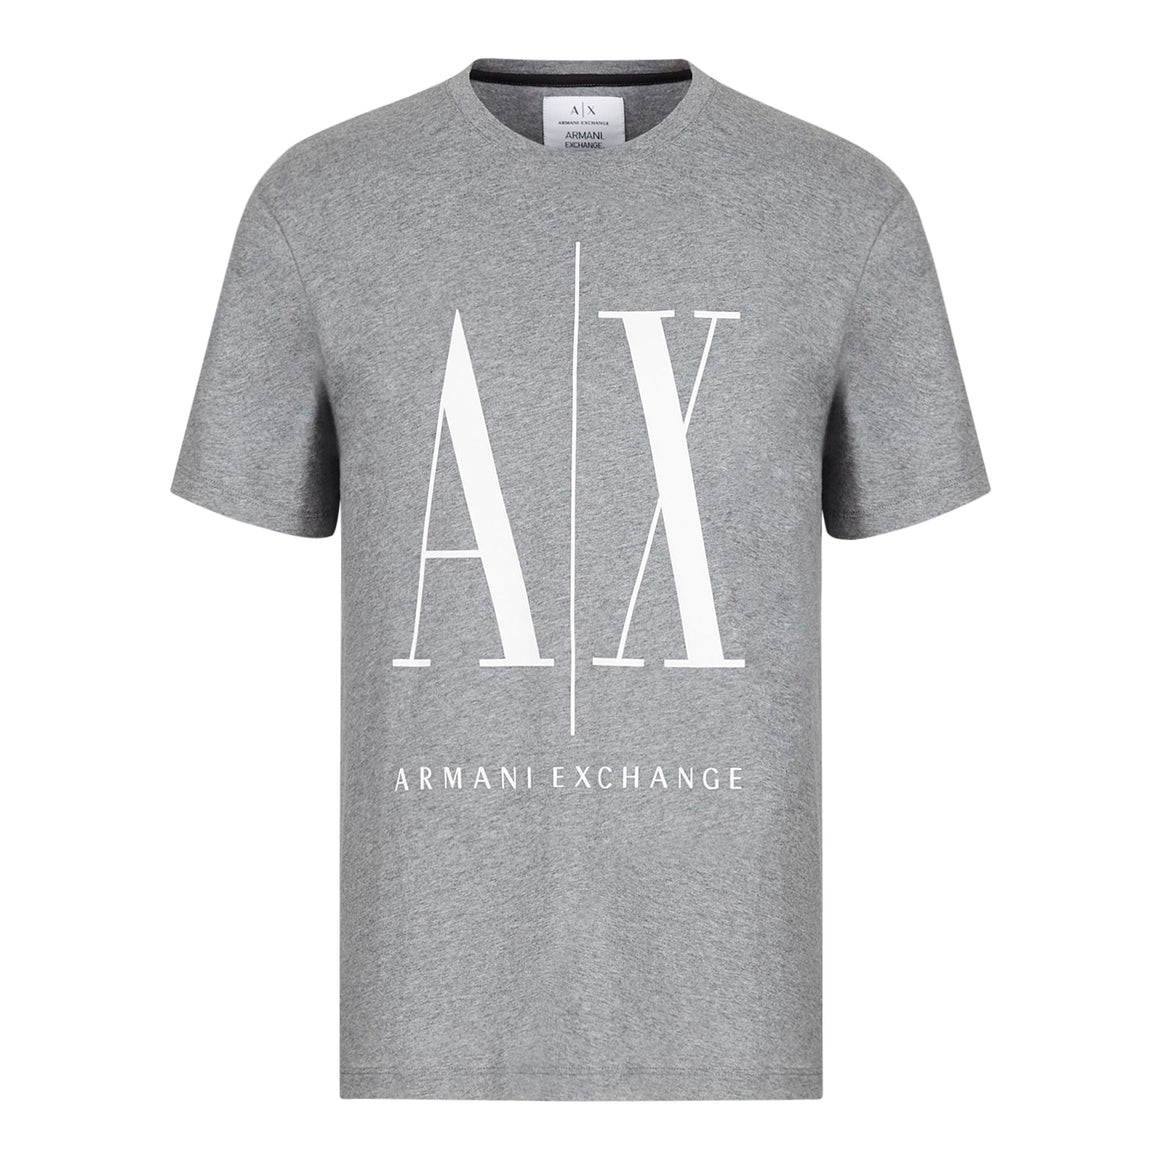 AX Print Tee for Men in Charcoal